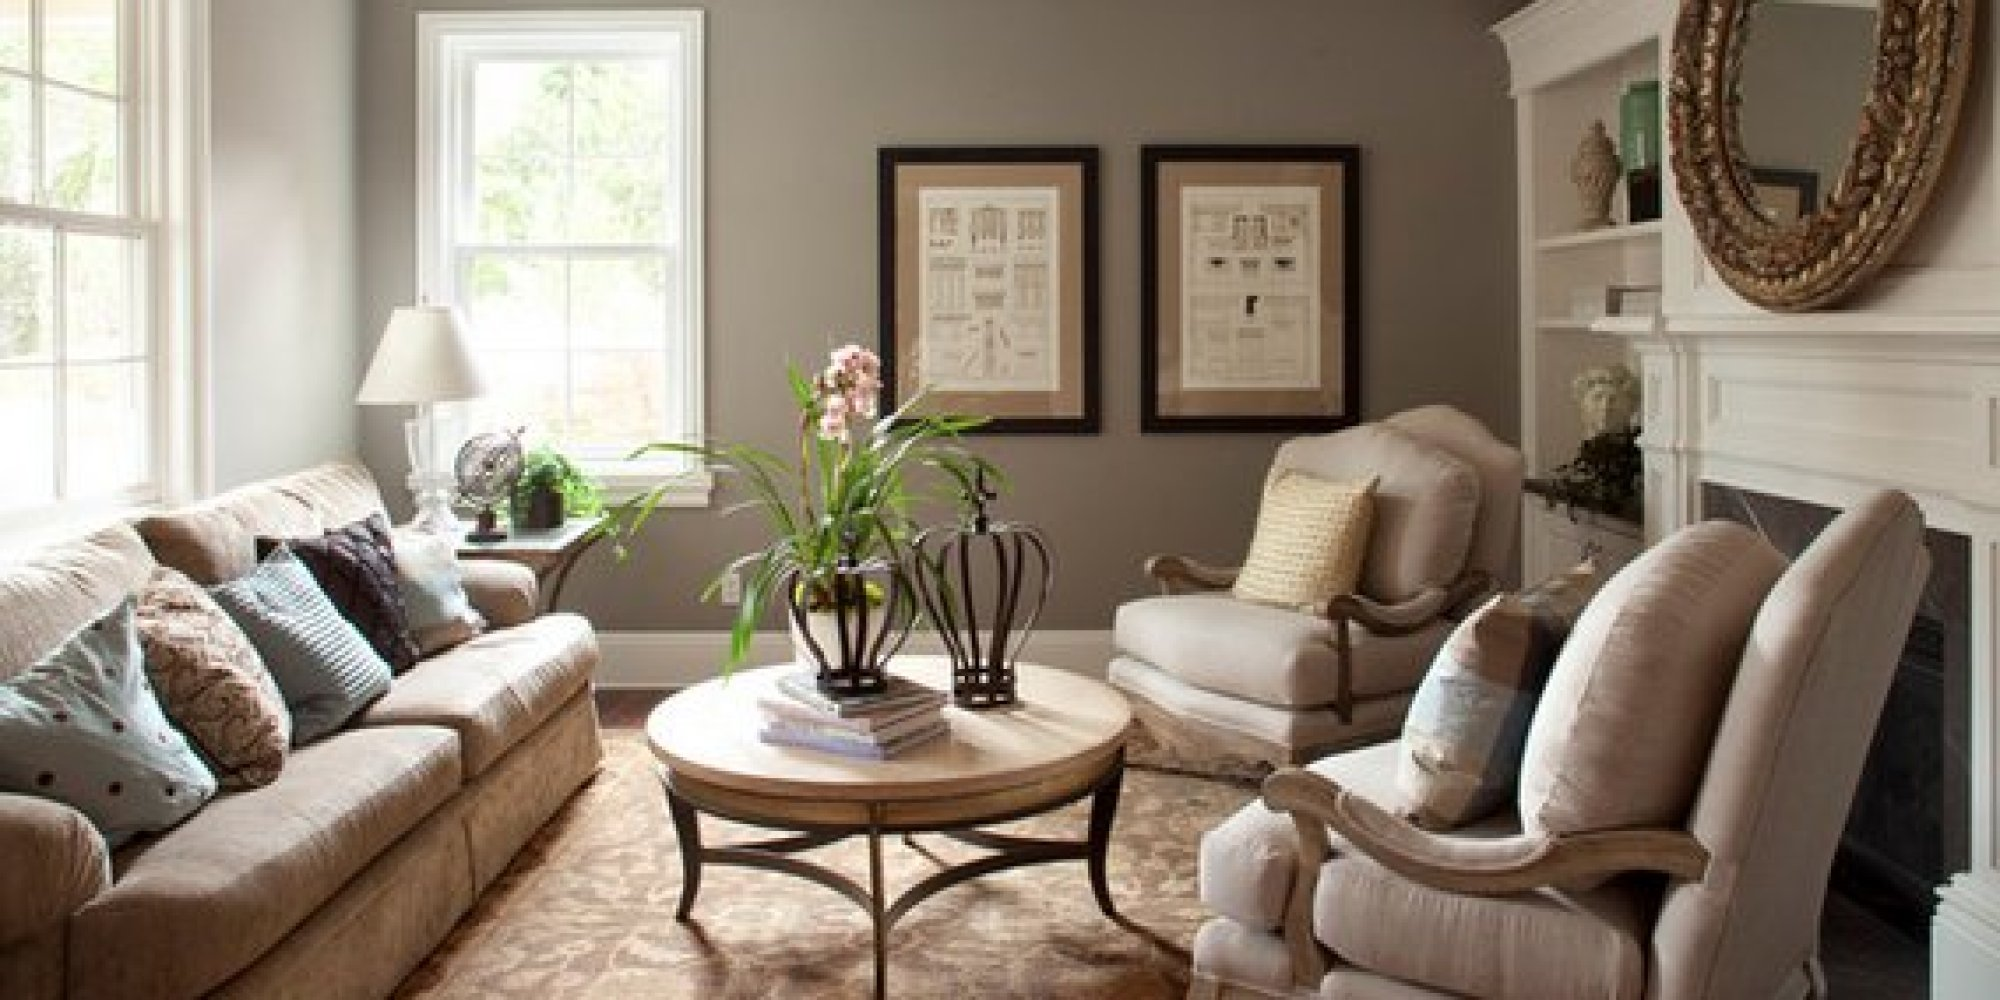 Paint Colors For A Small Living Room The 6 Best Paint Colors That Work In Any Home Huffpost